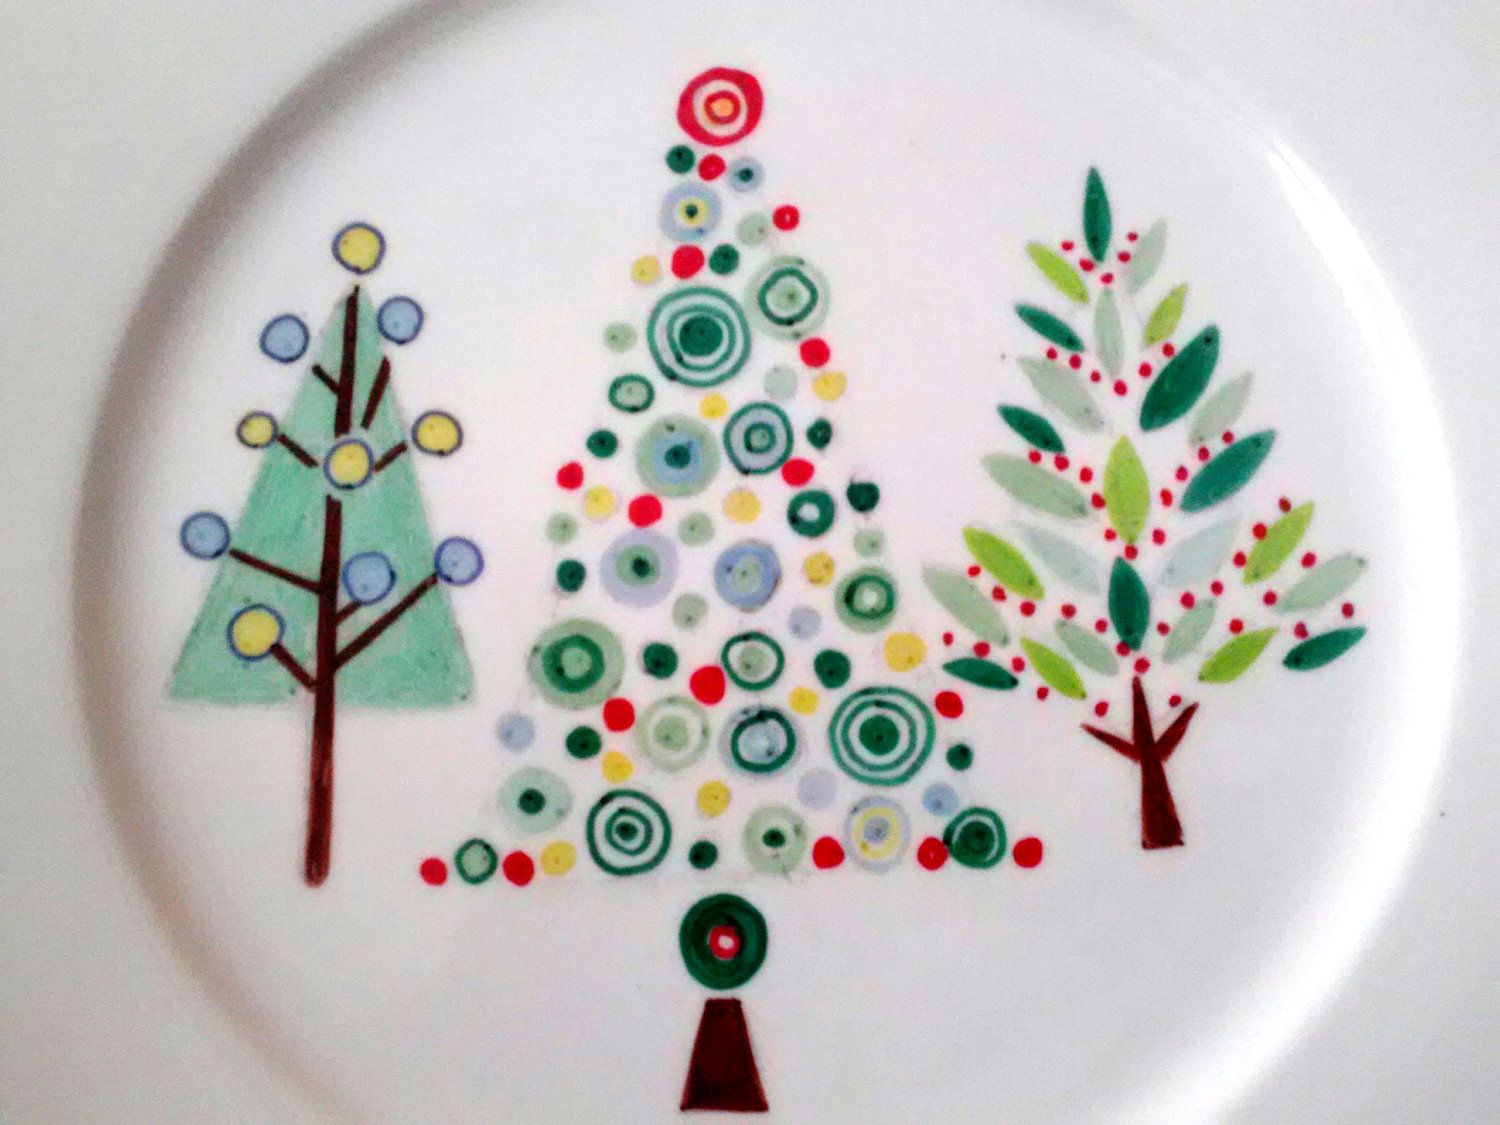 Retro Christmas Tree Plate Decorative Purposes Only 20 00 Via Etsy Pottery Painting Paint Your Own Pottery Sharpie Plates